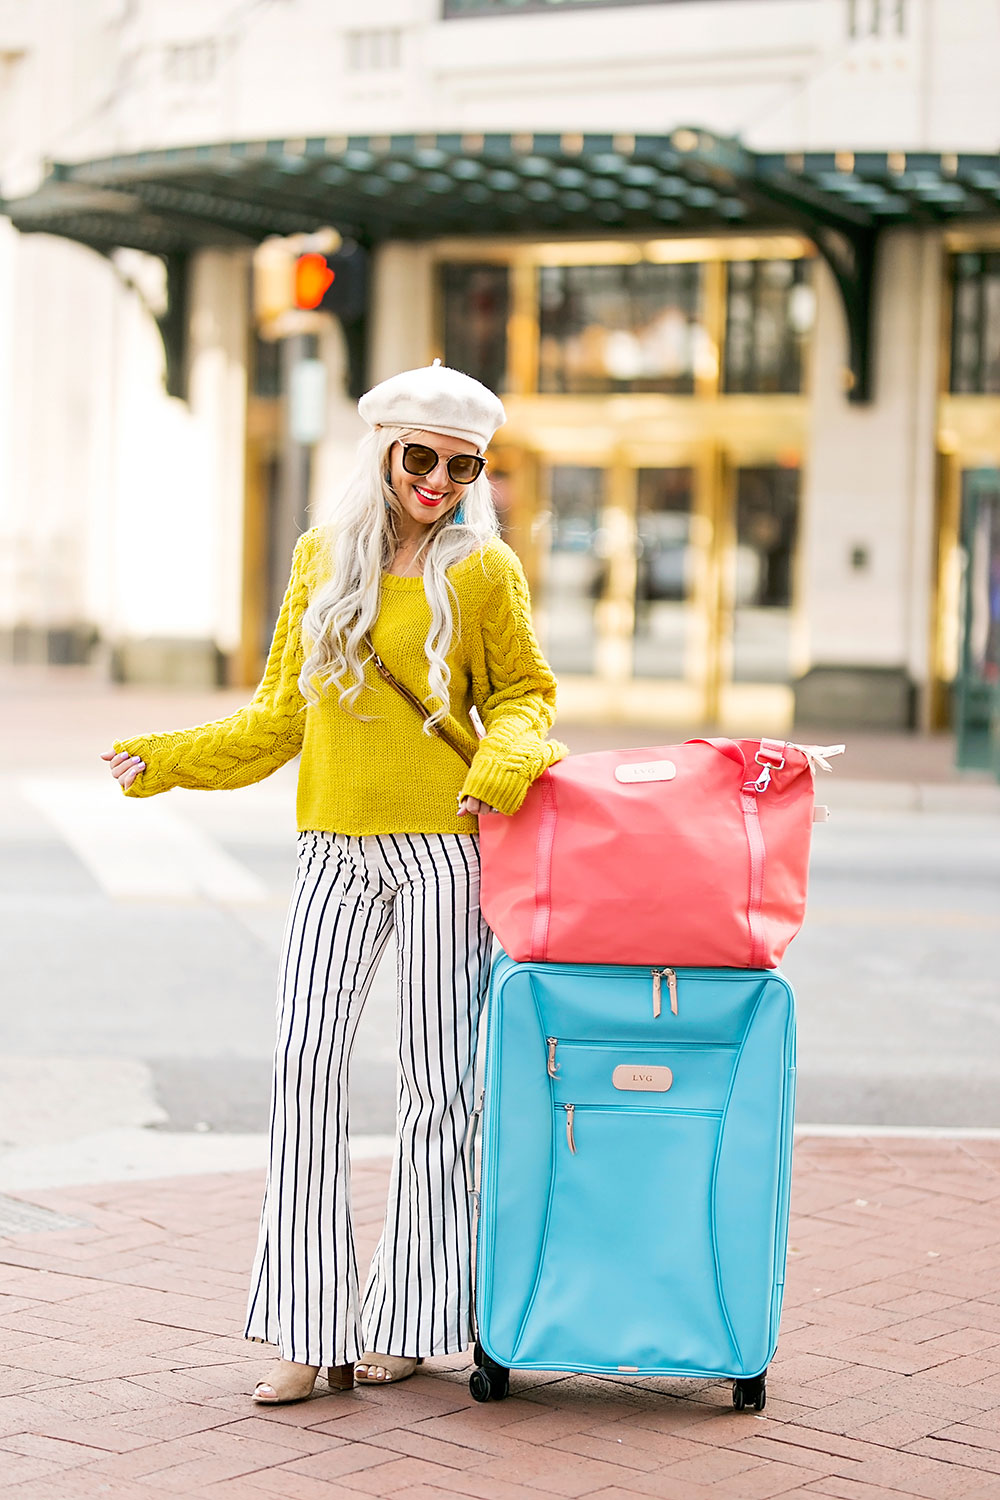 winter travel outfit idea